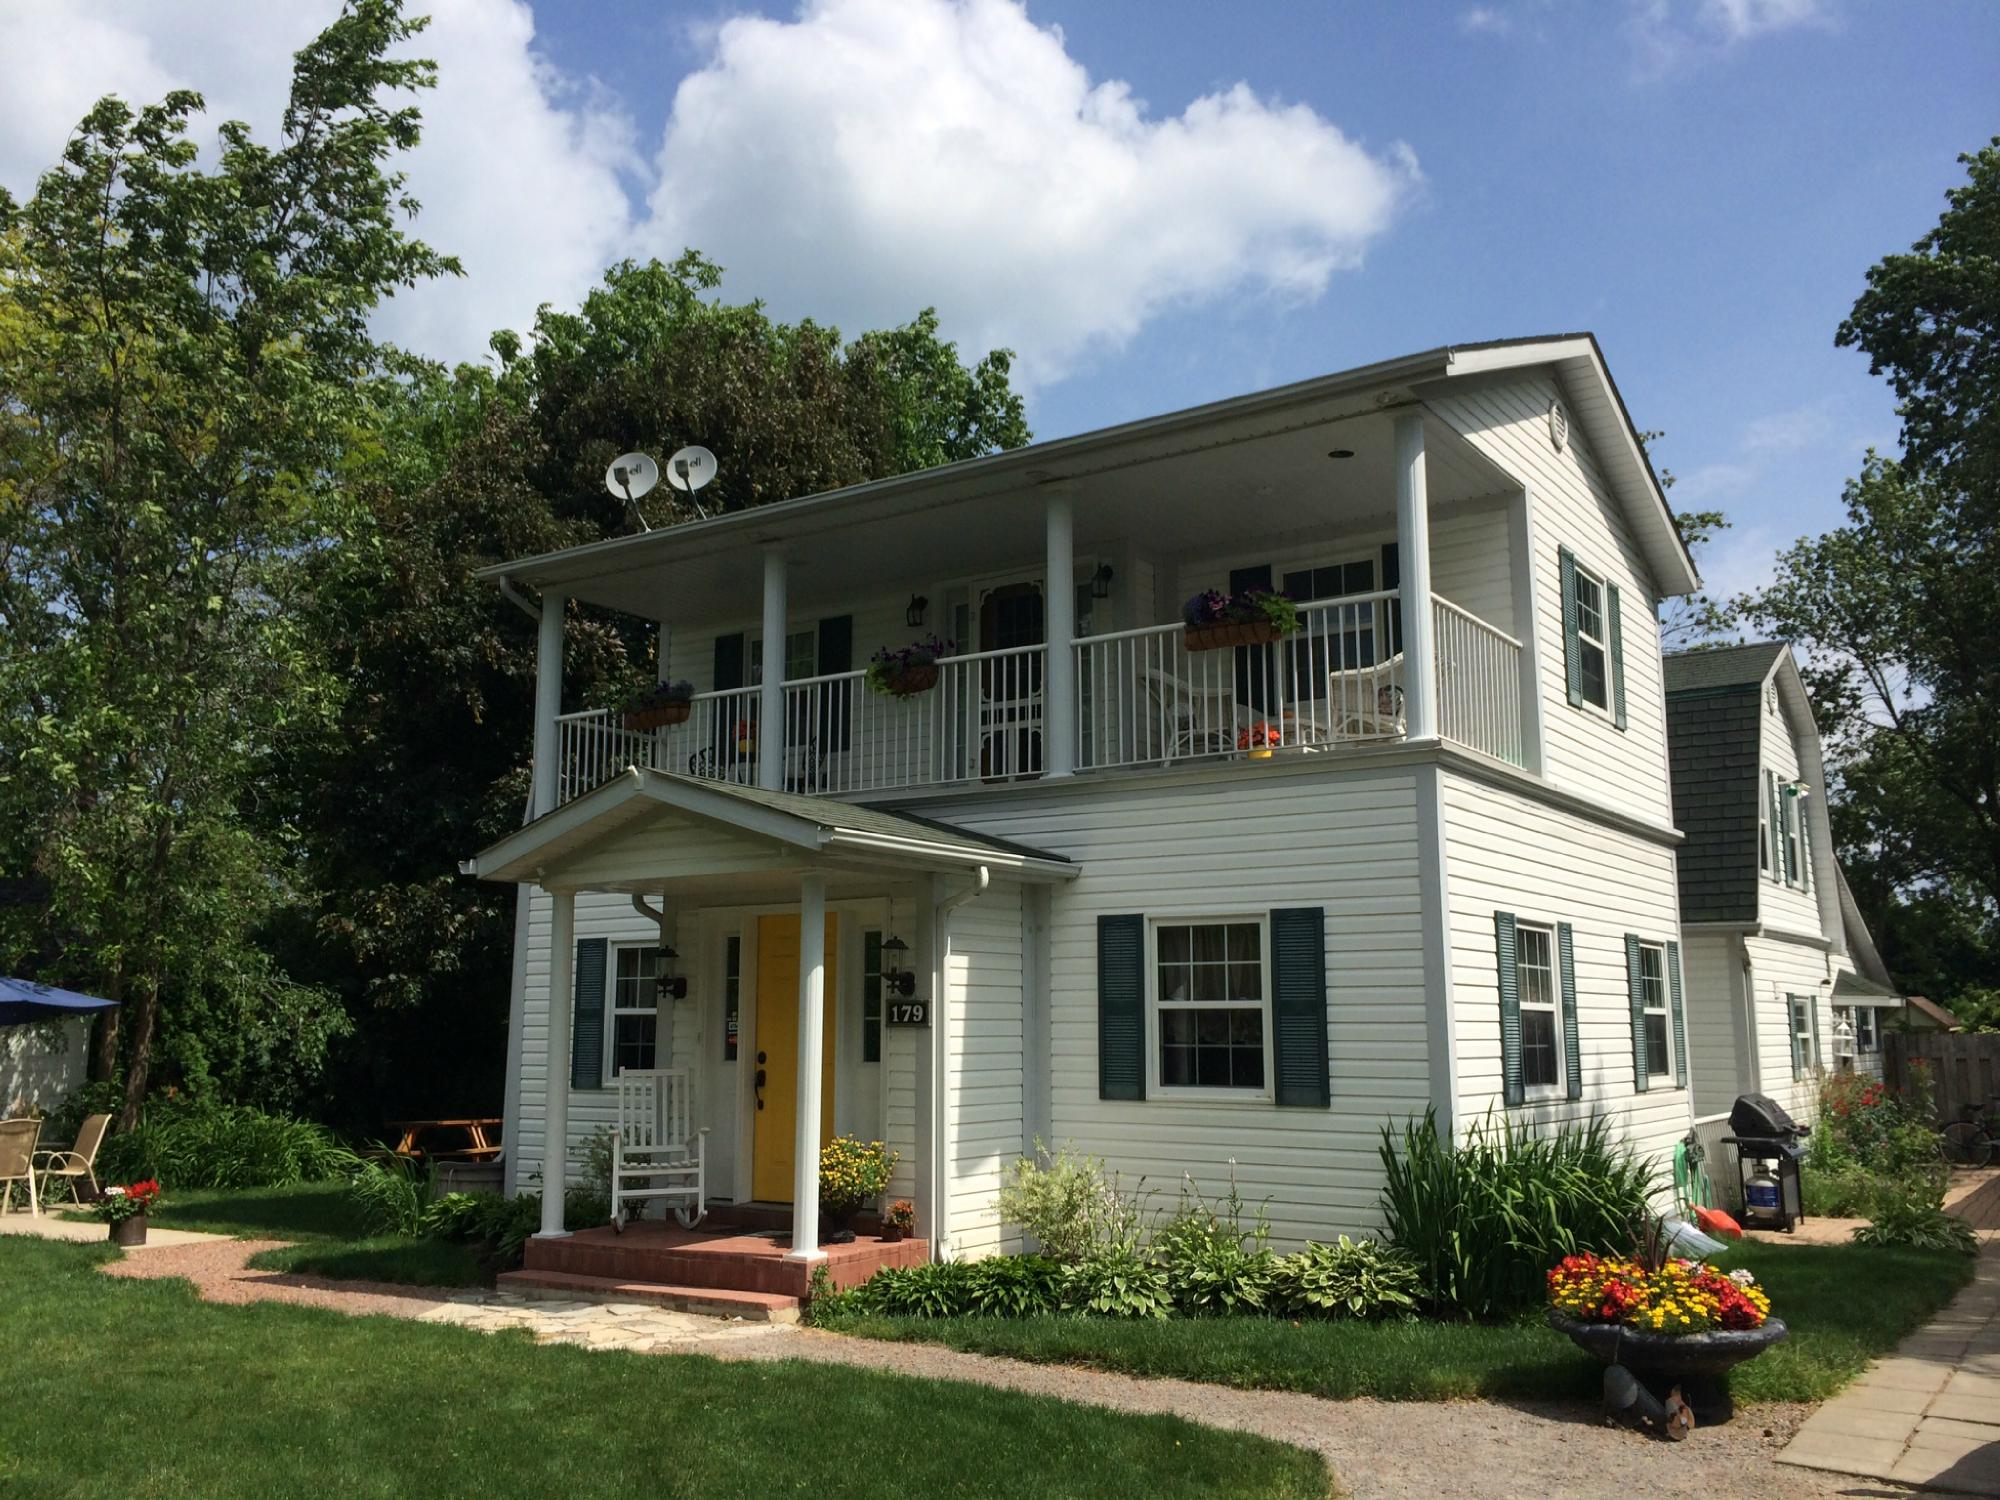 Mary Street Bed and Breakfast